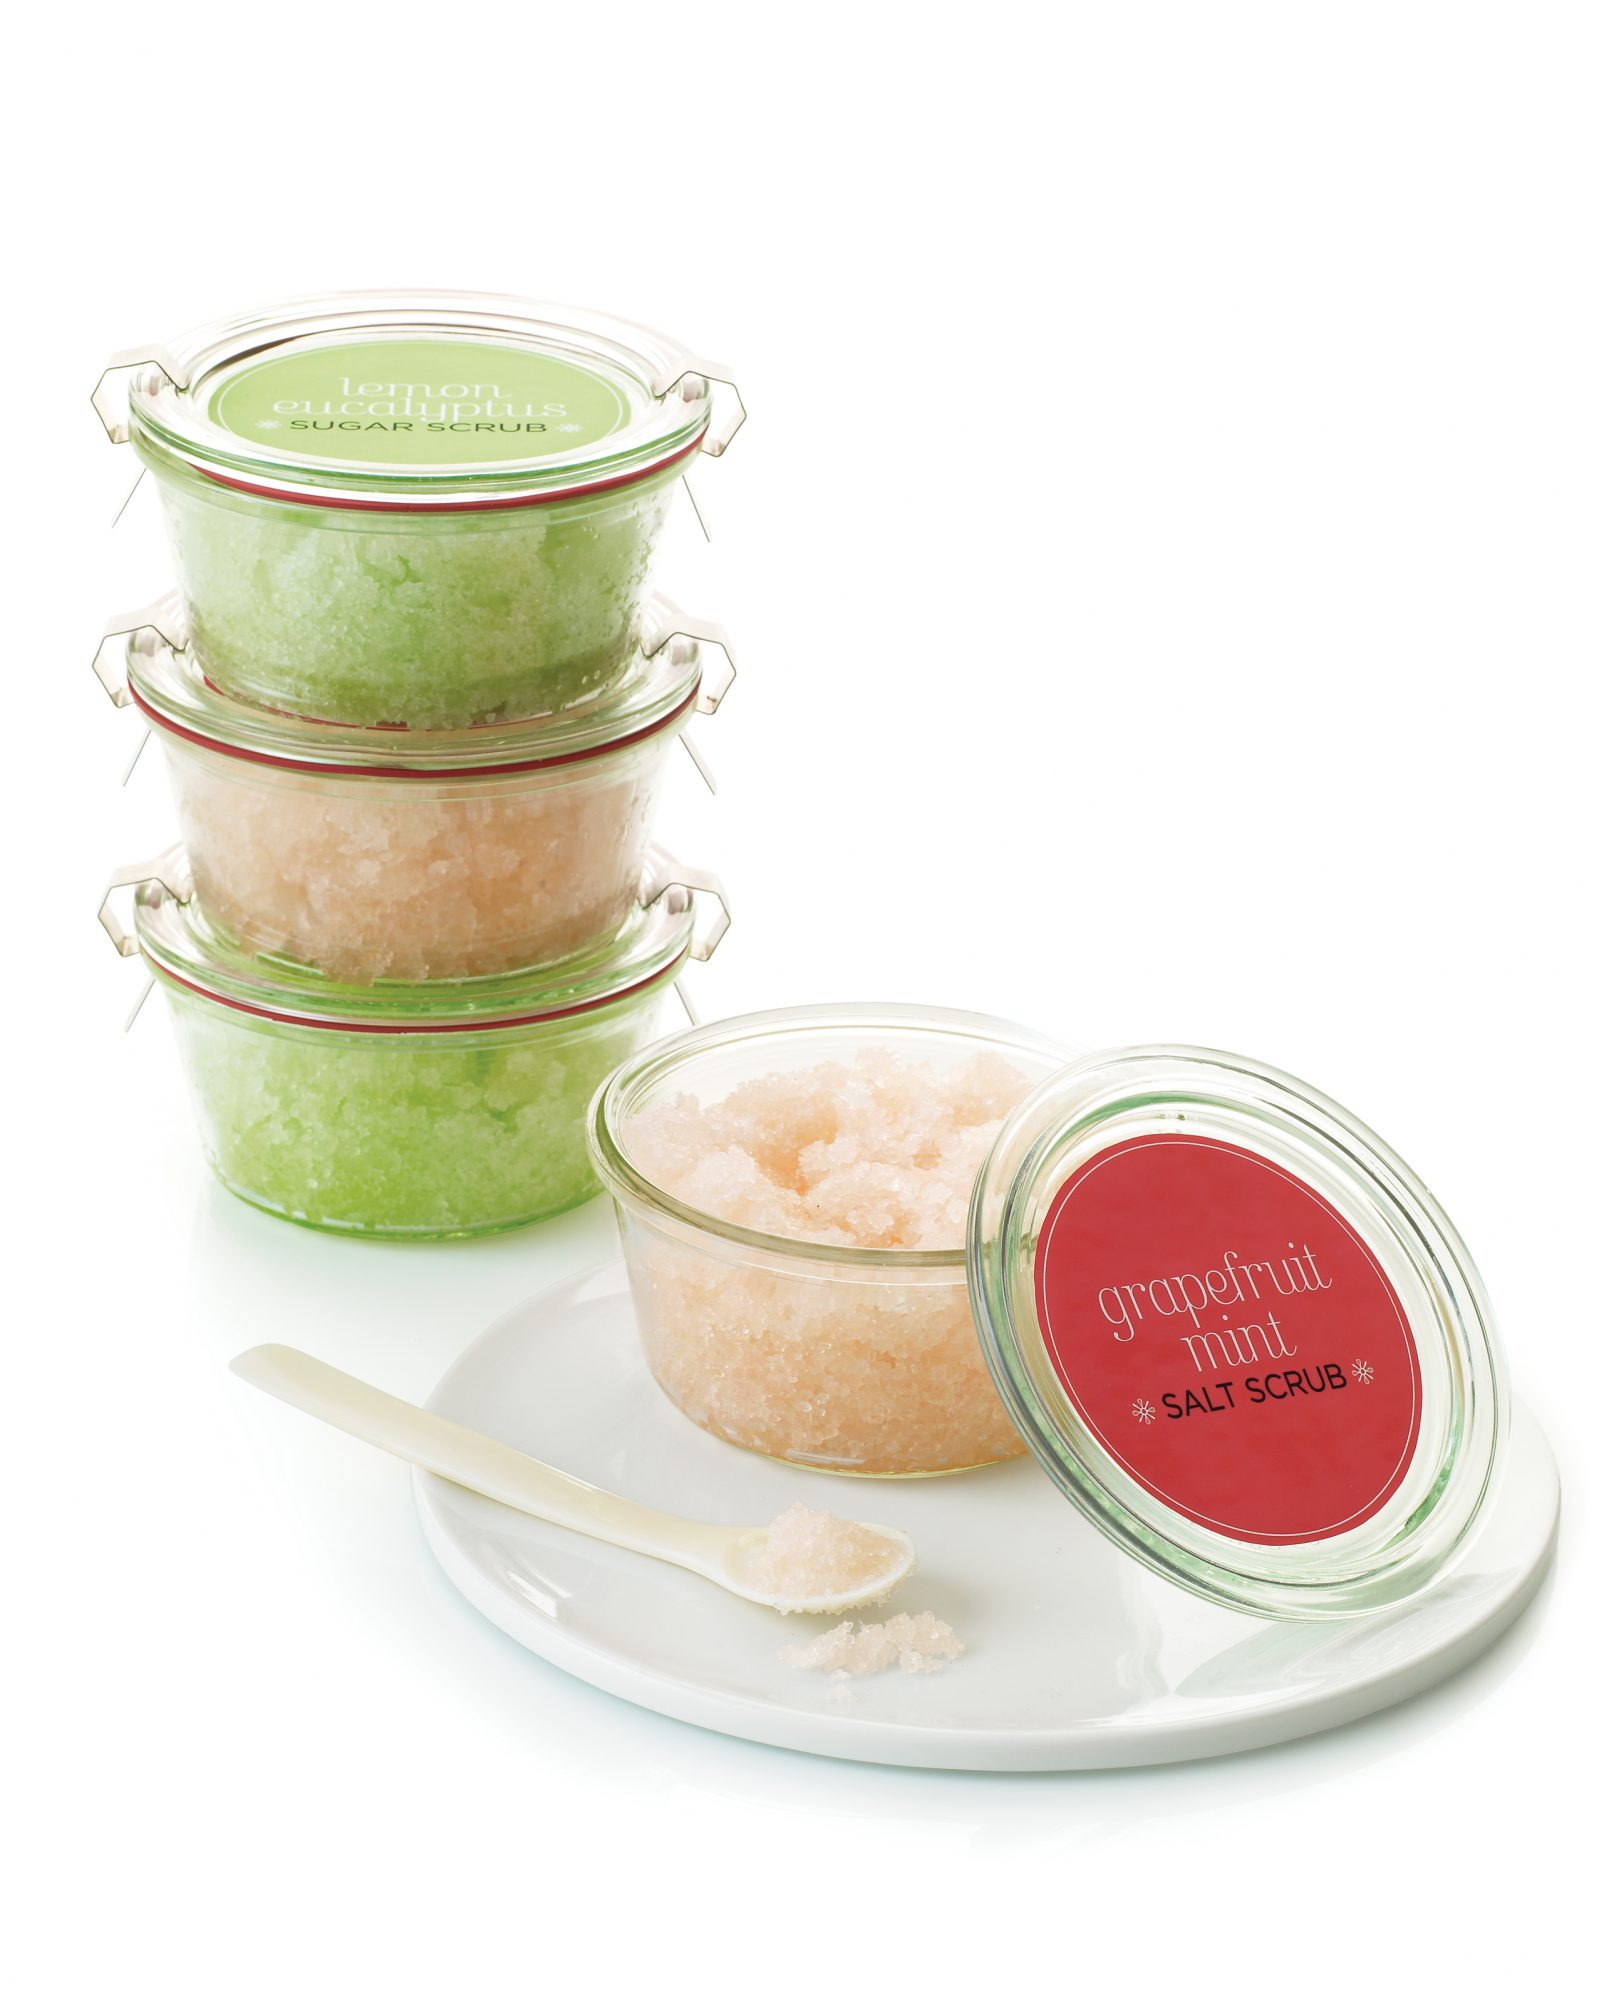 Pamper your gals with a homemade sugar or salt scrub that will leave their skin feeling silky-smooth. Spoon into cute little canning jars and seal with our free label clip art.